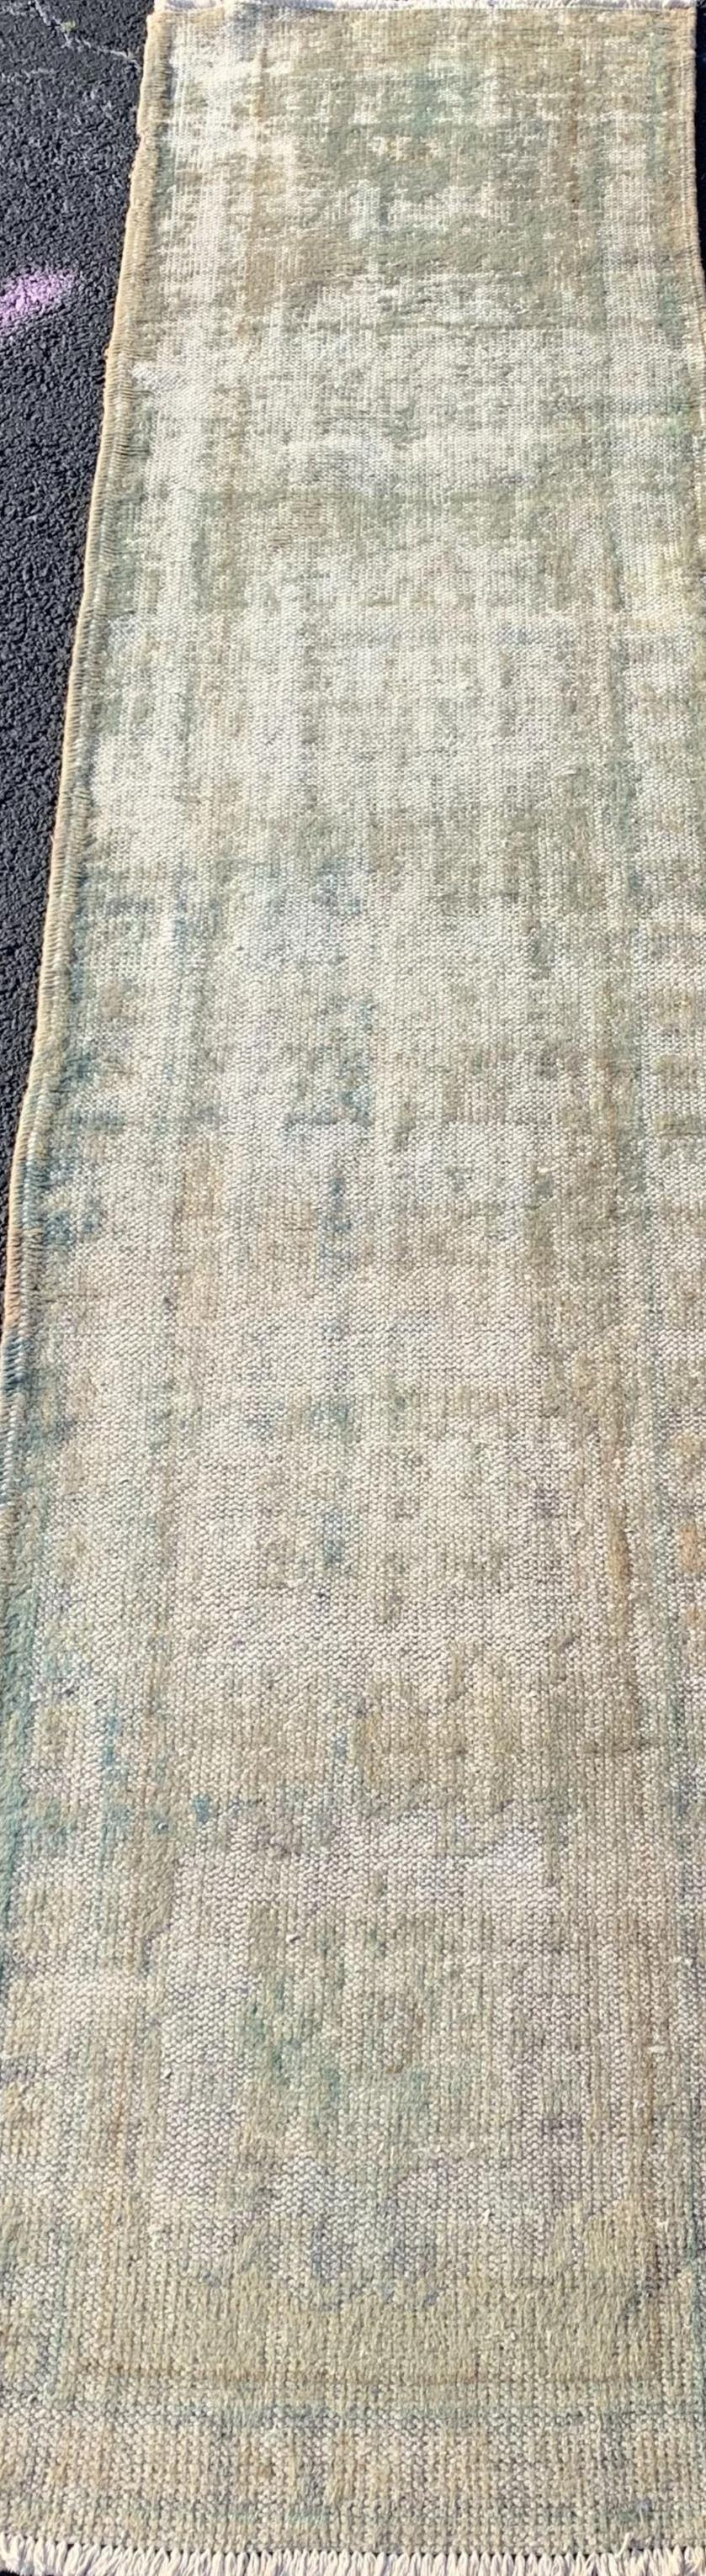 "2'9"" x 11'7"" Antique Turkish Oushak Runner - Online Oriental Rugs"